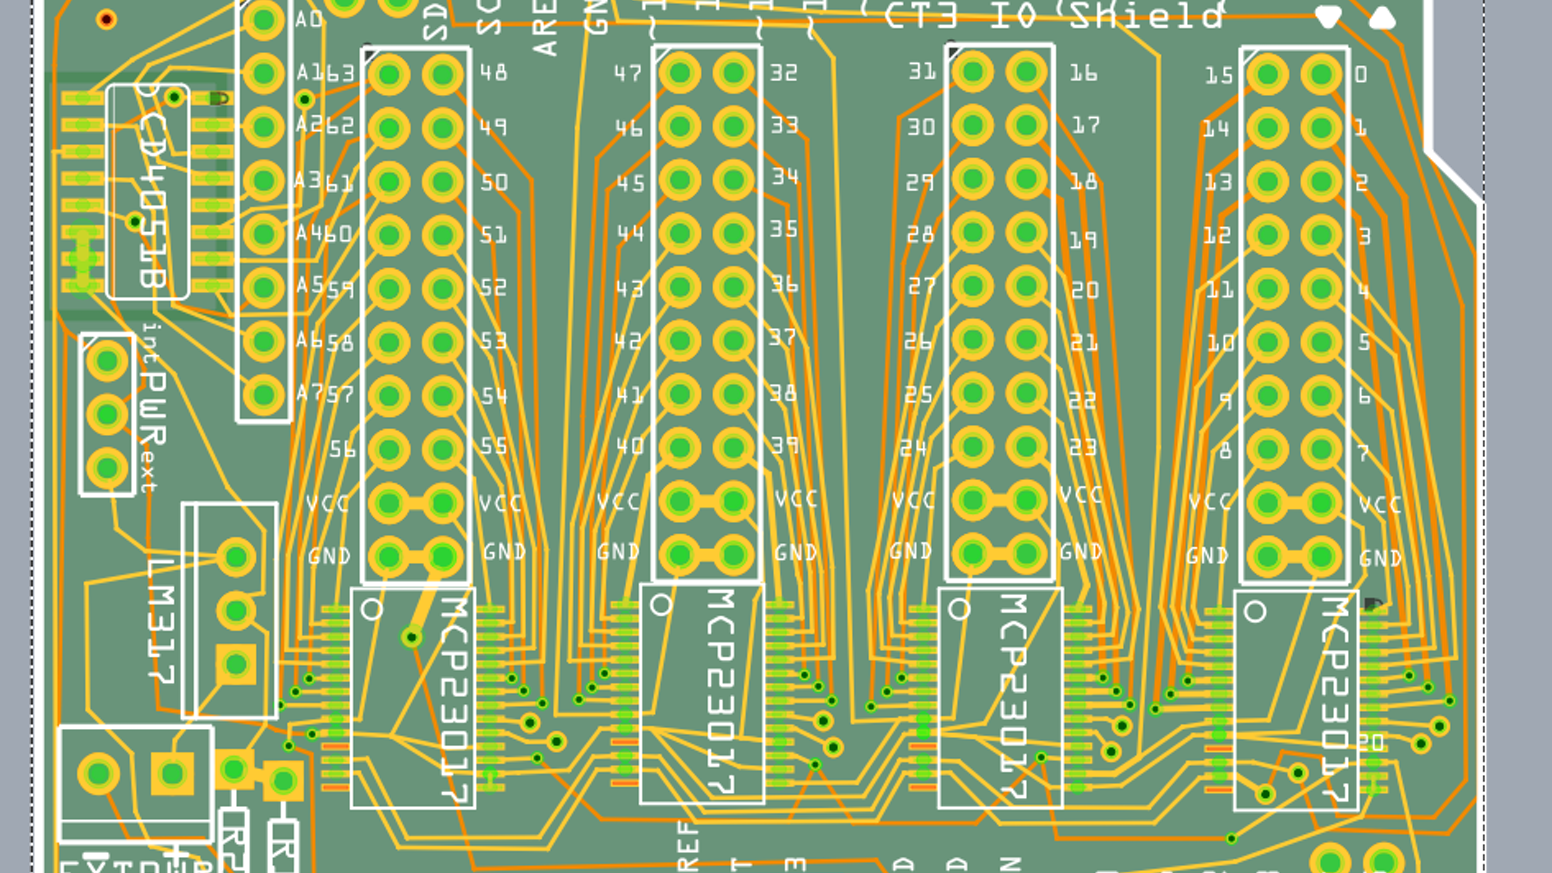 64 I/O Arduino Shield by mantas jurkuvenas » Check out my